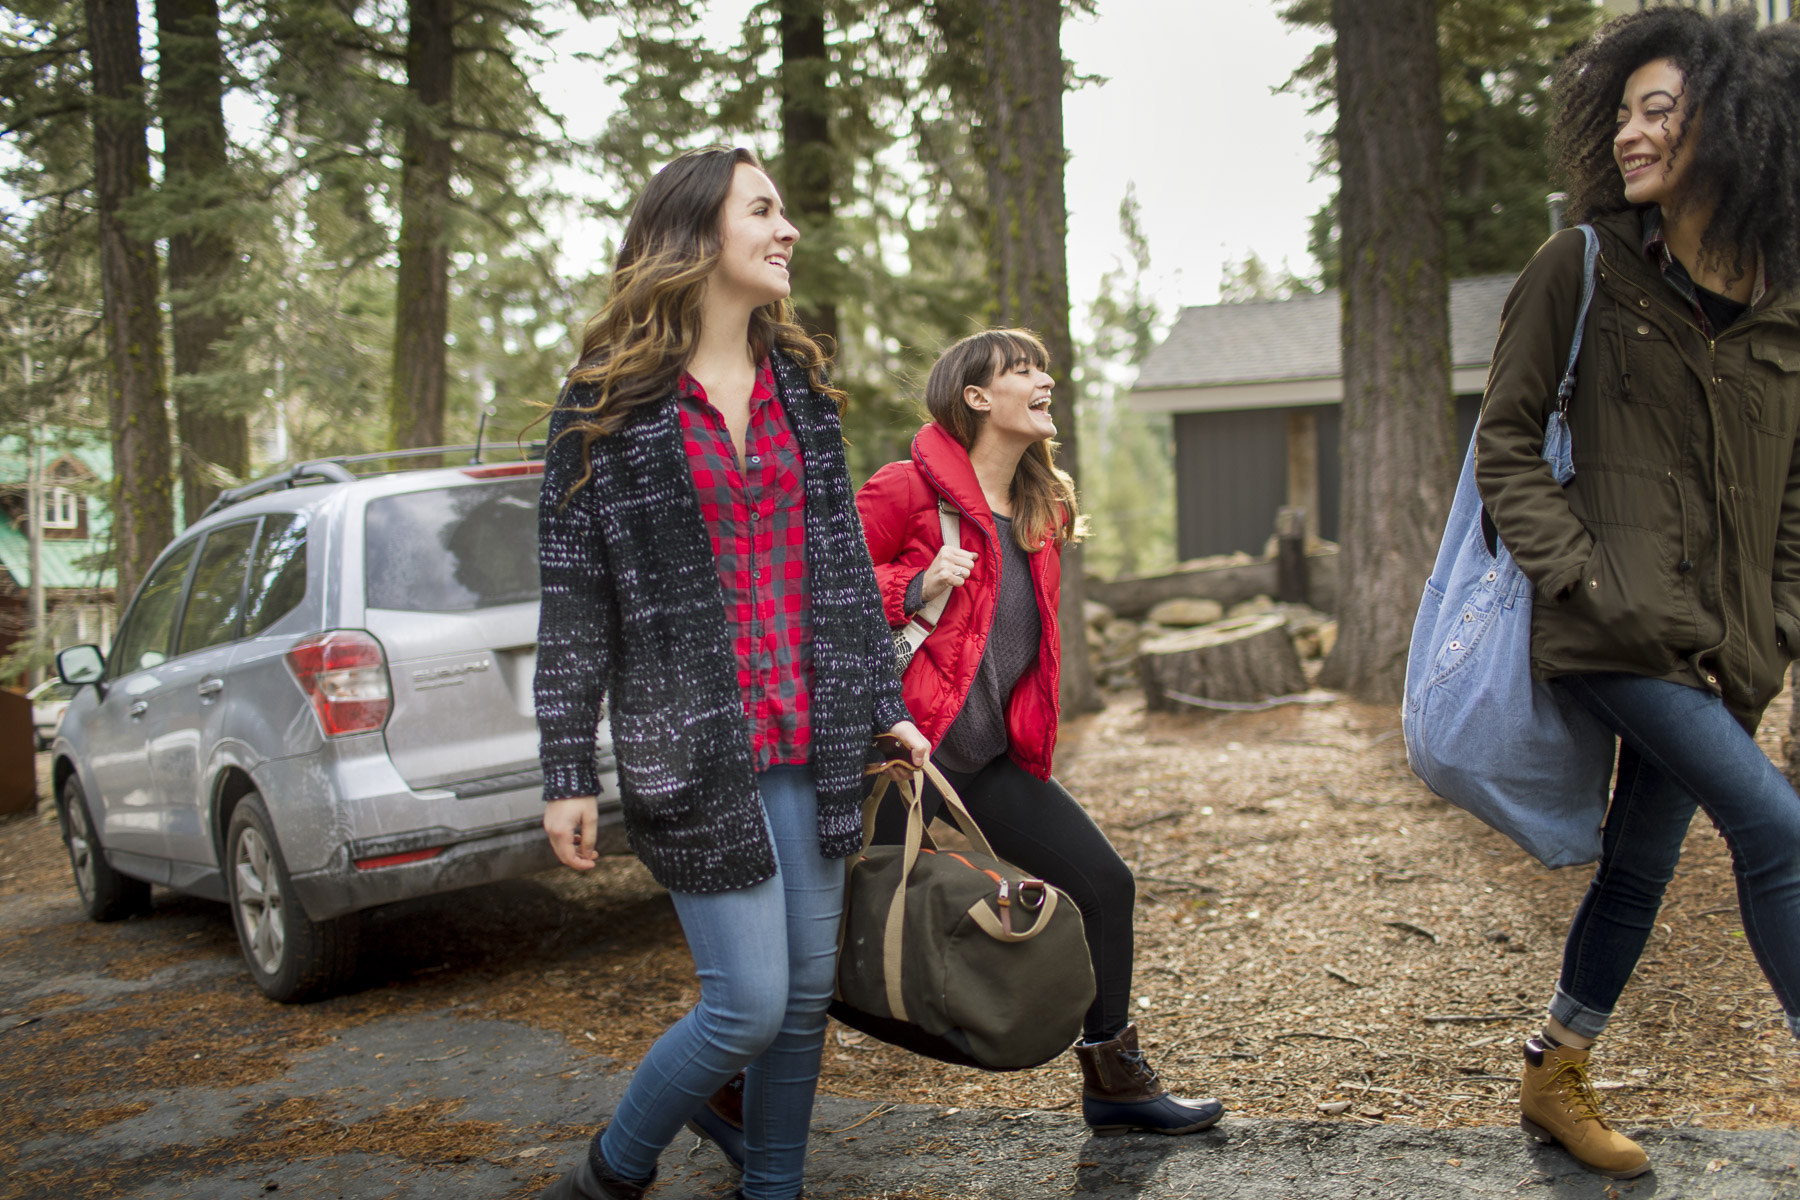 3 Girls Laughing Carrying weekend bags